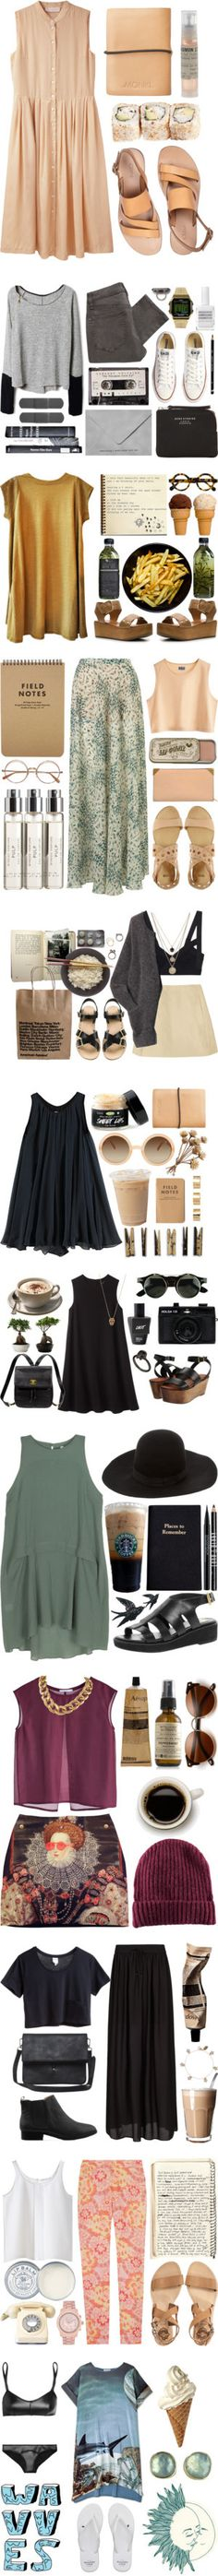 Winning sets from my group's past contests! #1 by vv0lf on Polyvore featuring Chloé, Cacharel, Monki, Le Labo, women's clothing, women's fashion, women, female, woman and misses